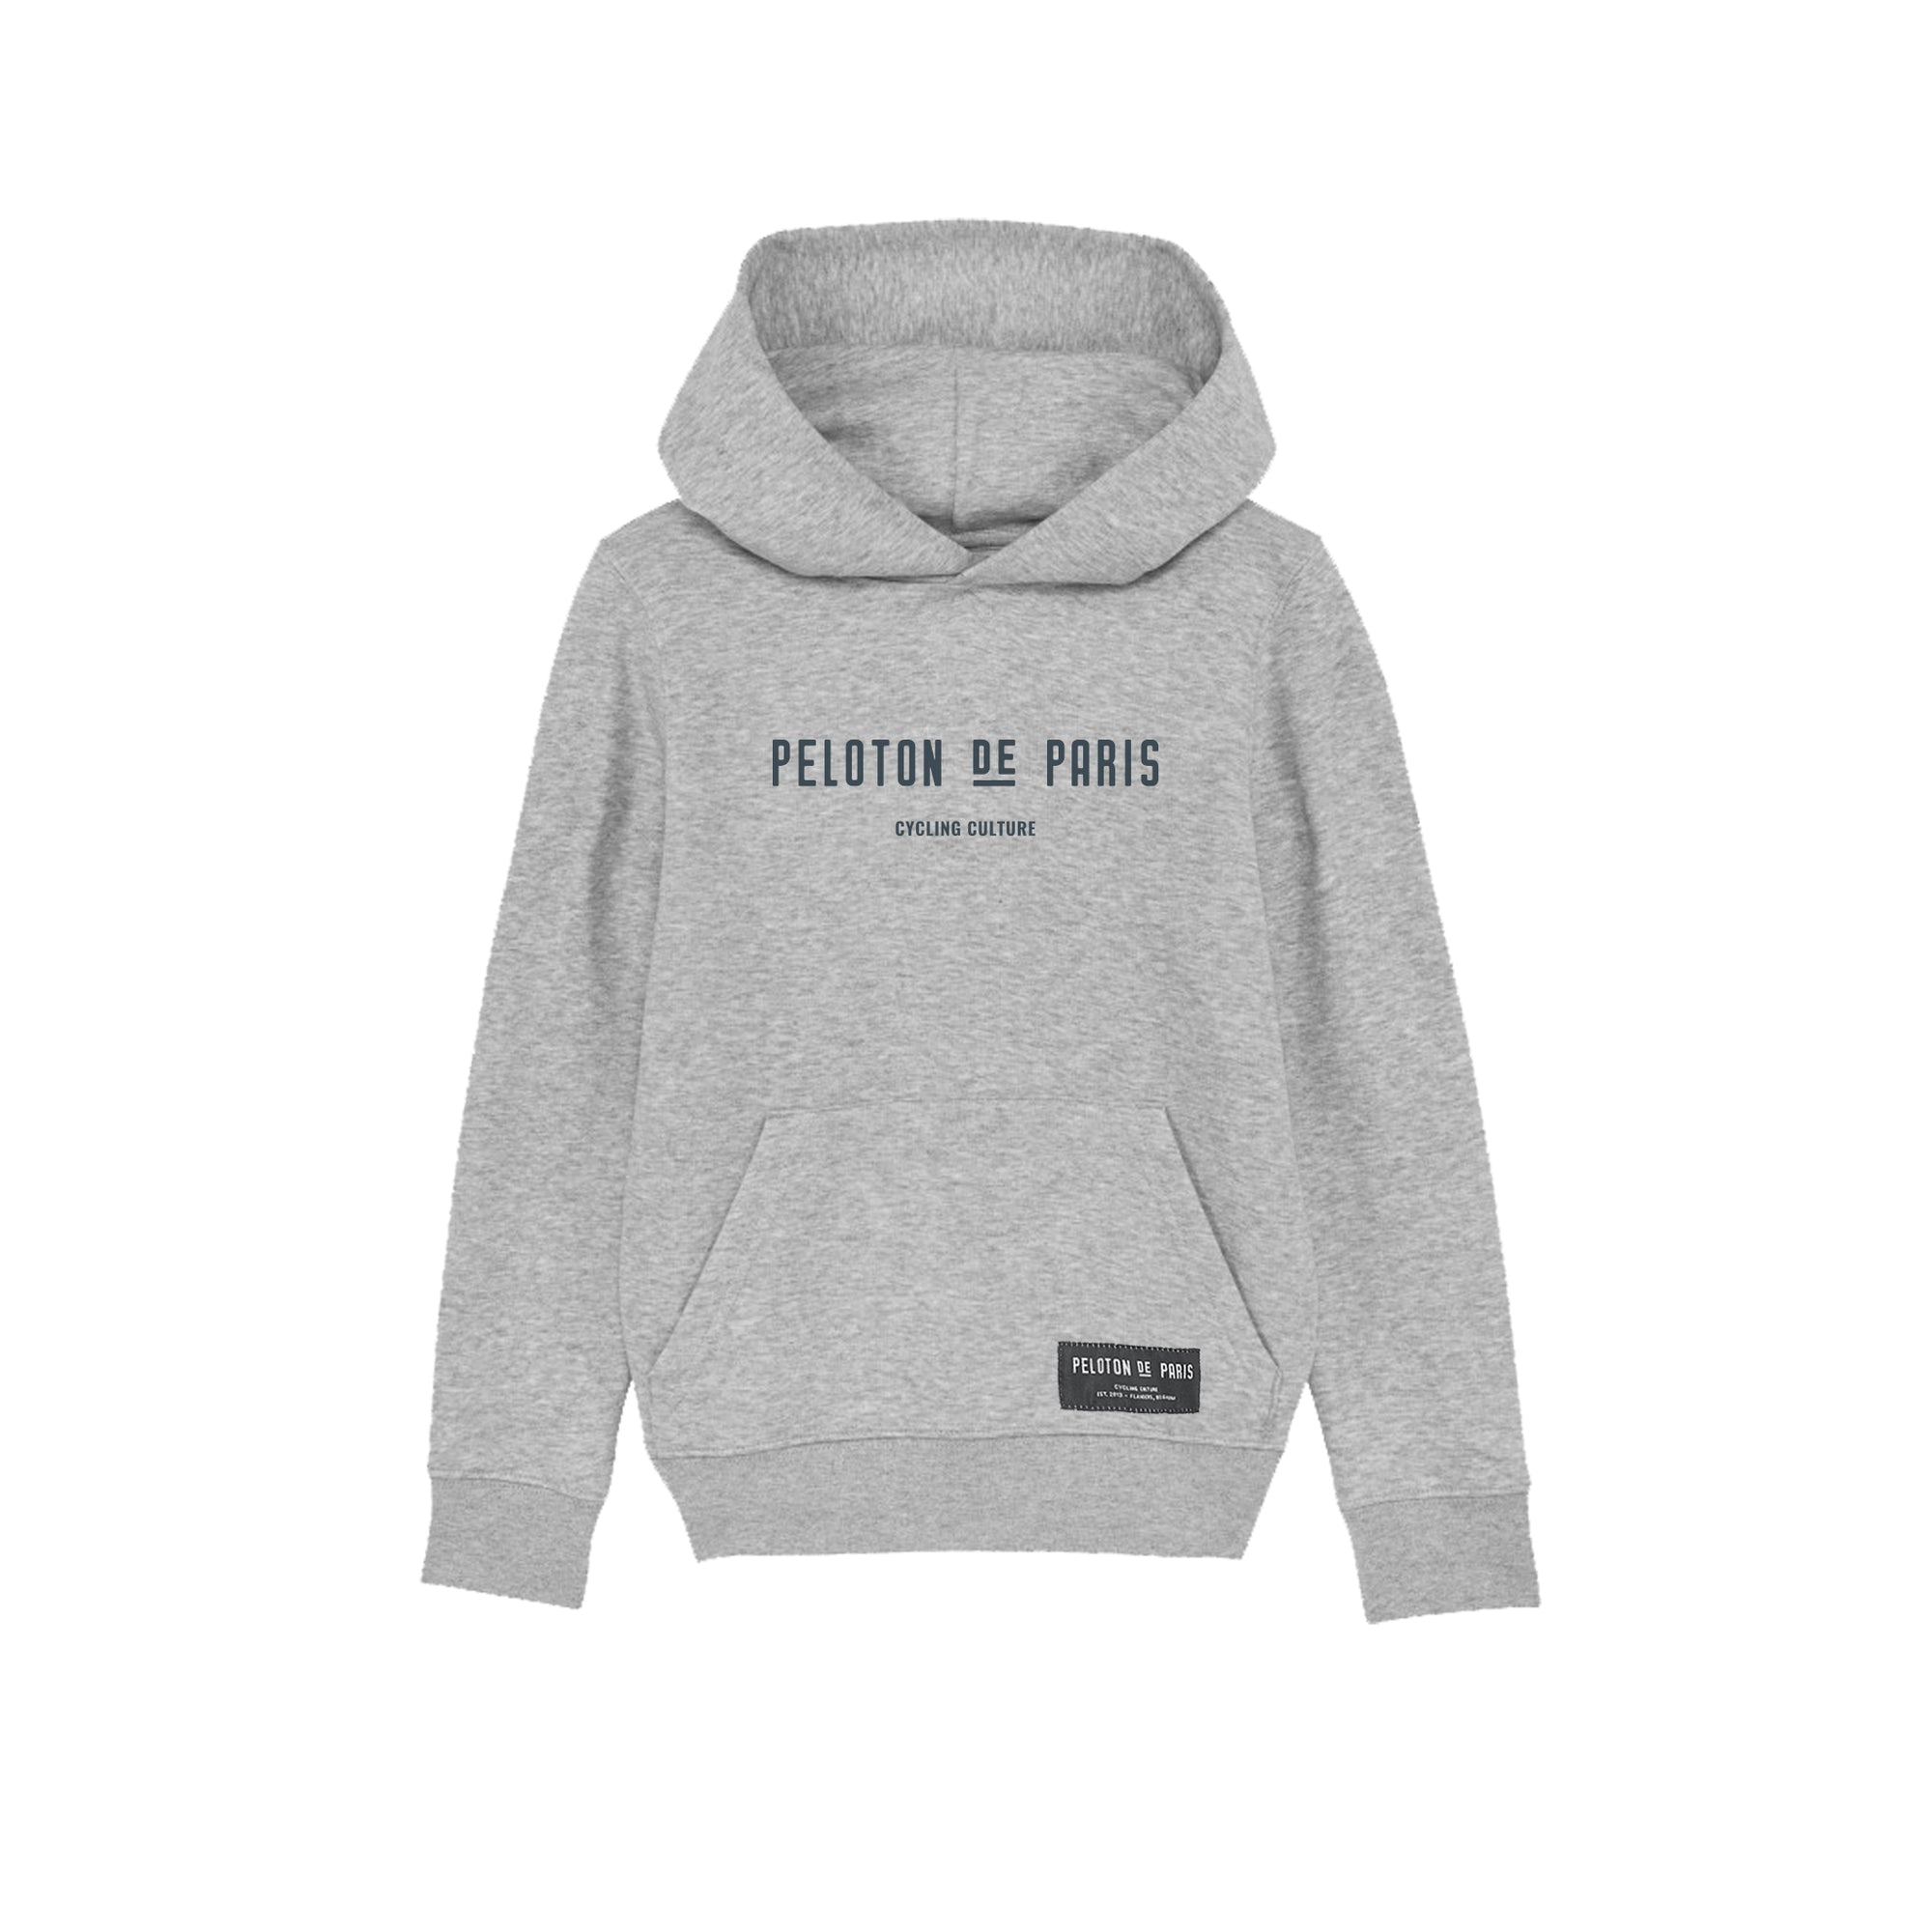 Cycling Culture Kids Hoodie Heather Grey